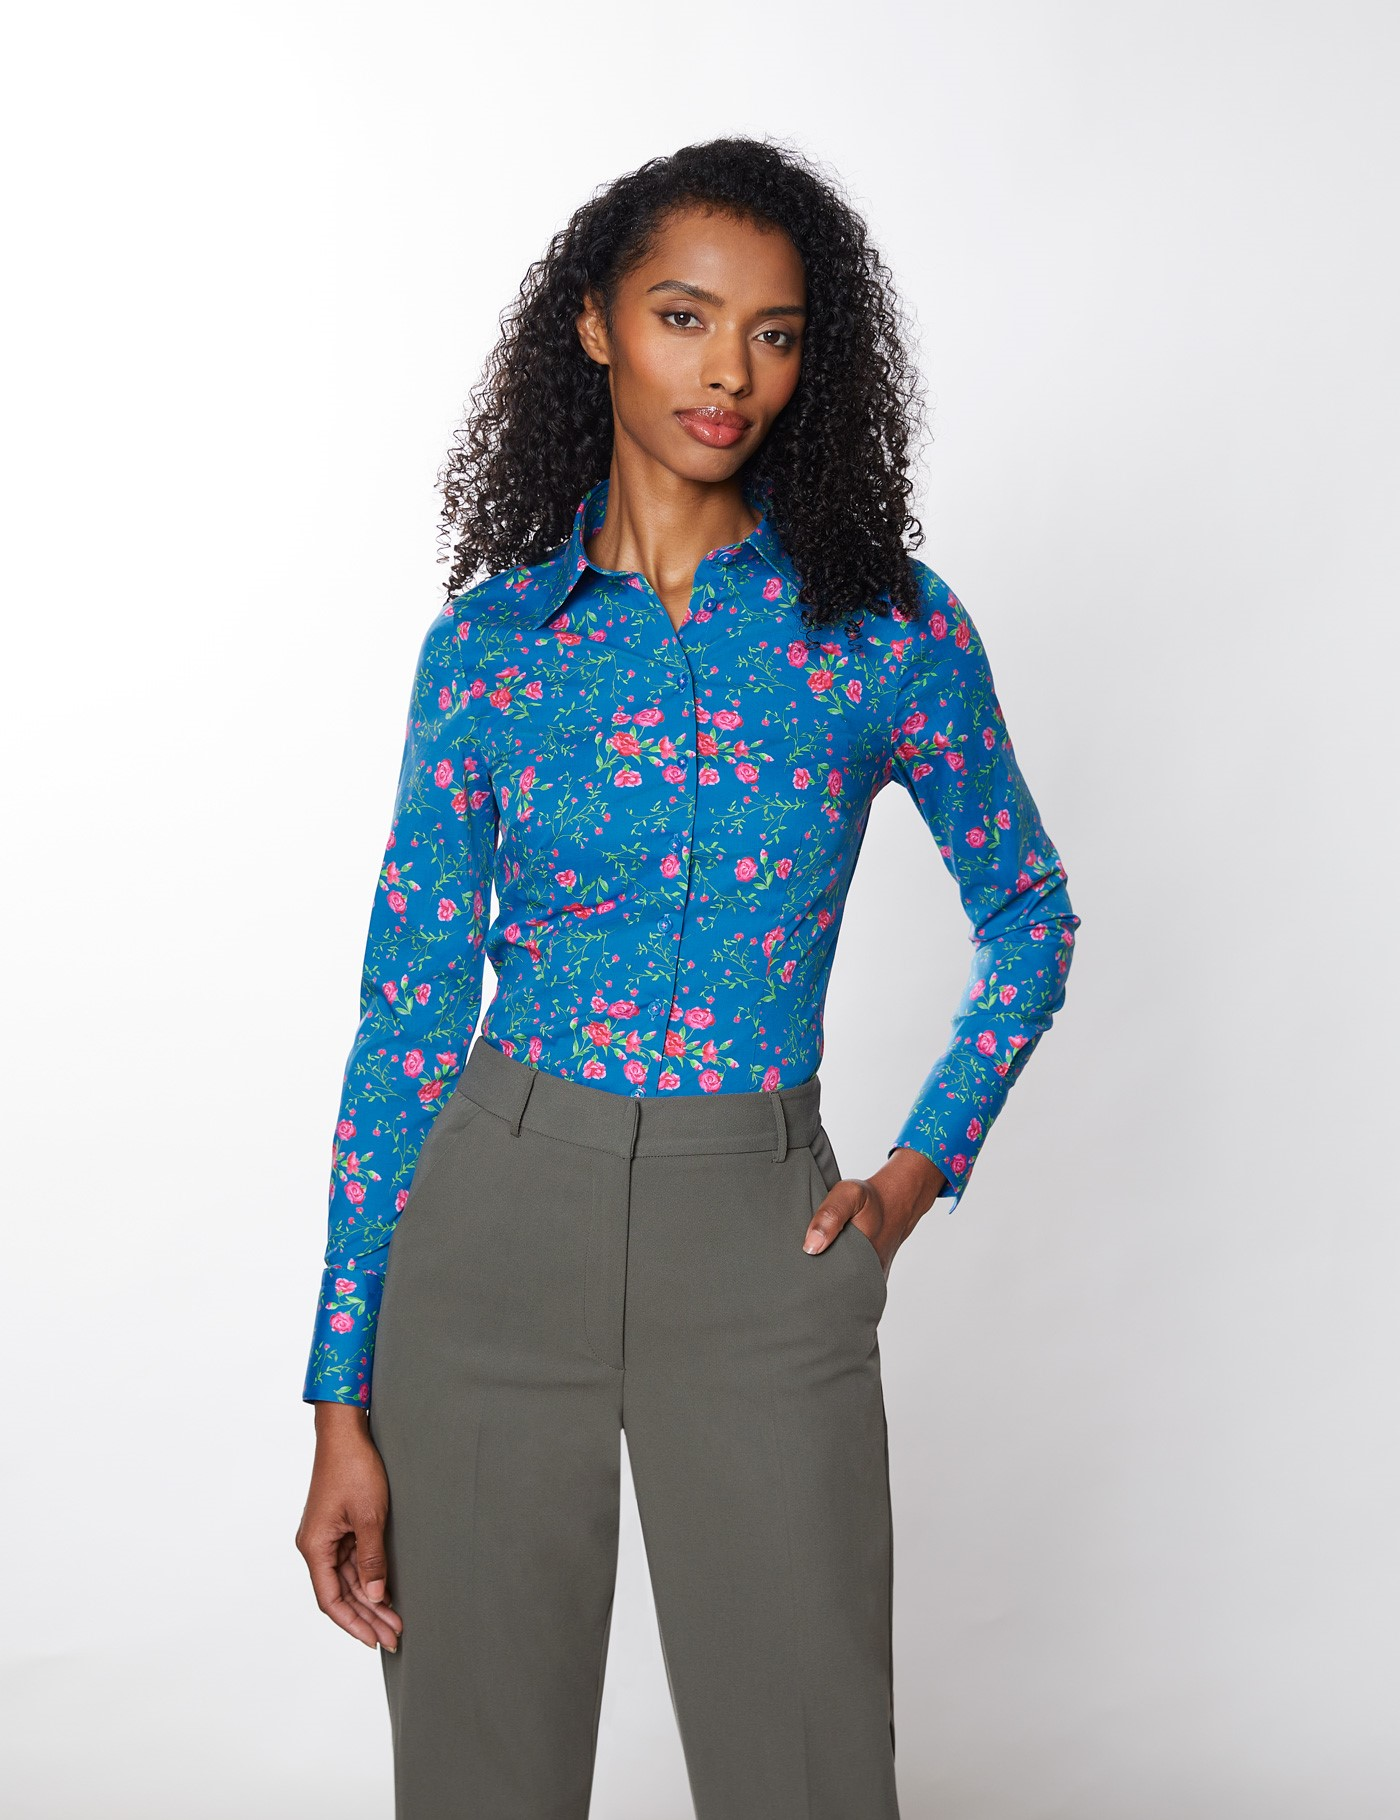 Women's Floral Fitted Cotton Stretch Shirt In Blue/Fuchsia | Size 22 | Hawes & Curtis